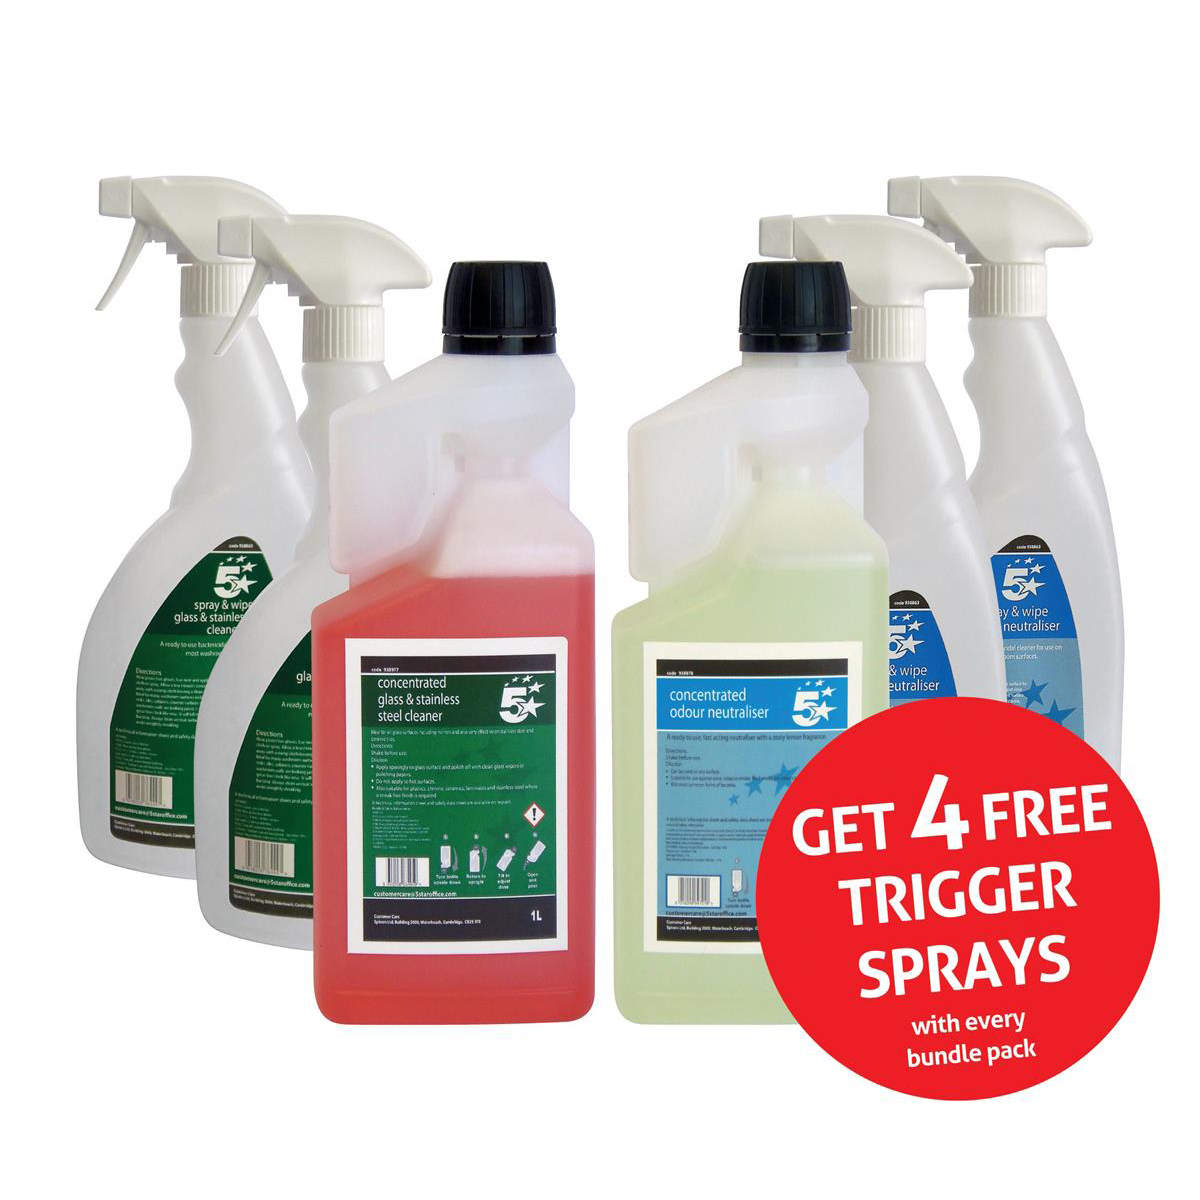 5 Star Facilities Glass/Stainless Steel Cleaner & Odour Neutraliser 1 Litre FREE 750ml Trigger Bottles